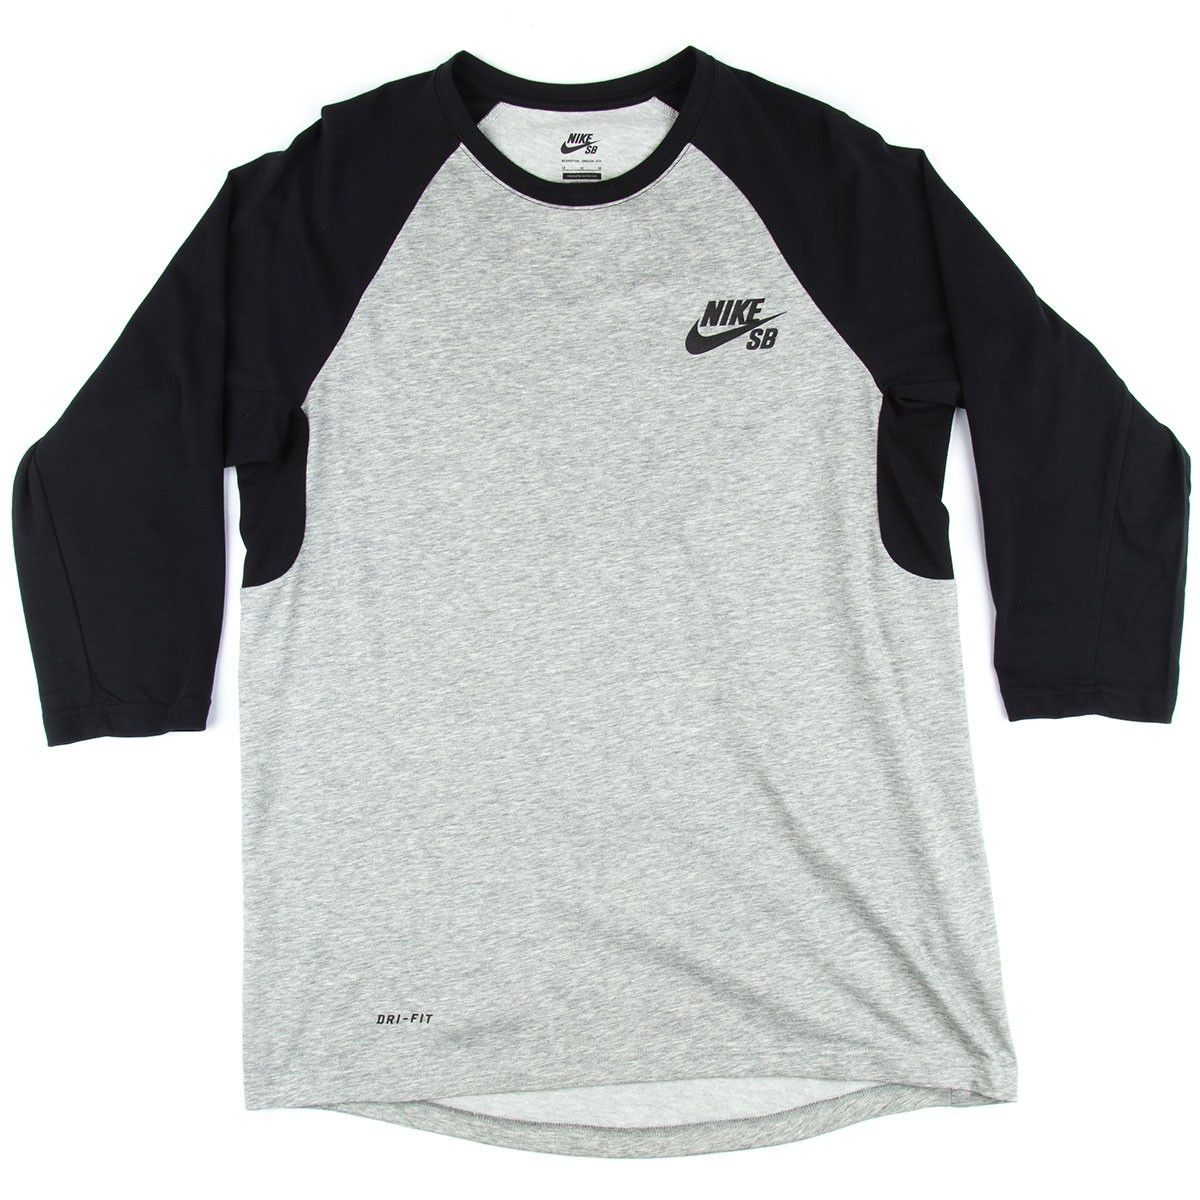 211d8183 nike-sb-dri-fit-3-4-sleeve-crew-t-shirt-dark-heather-grey-black-black -1.1506812009.jpg